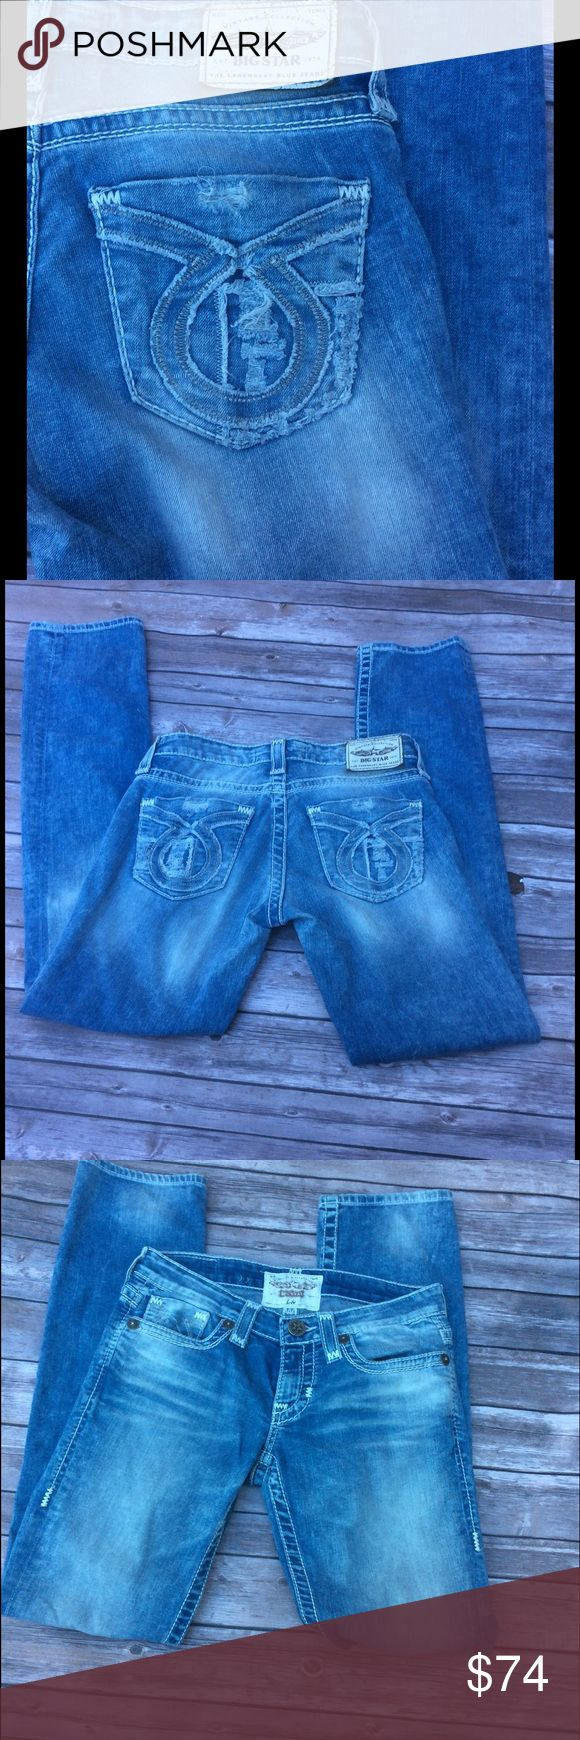 """EUC BIG STAR VINTAGE LIV STRAIGHT CUT JEANS Soft. Stretchy. Lightweight. I think I wore these once or twice. No signs of wear. No stains. Hem measures 7"""" across. 32"""" inseam. Professional custom hem available for $10. Original hem will be kept. Big Star Pants Straight Leg"""